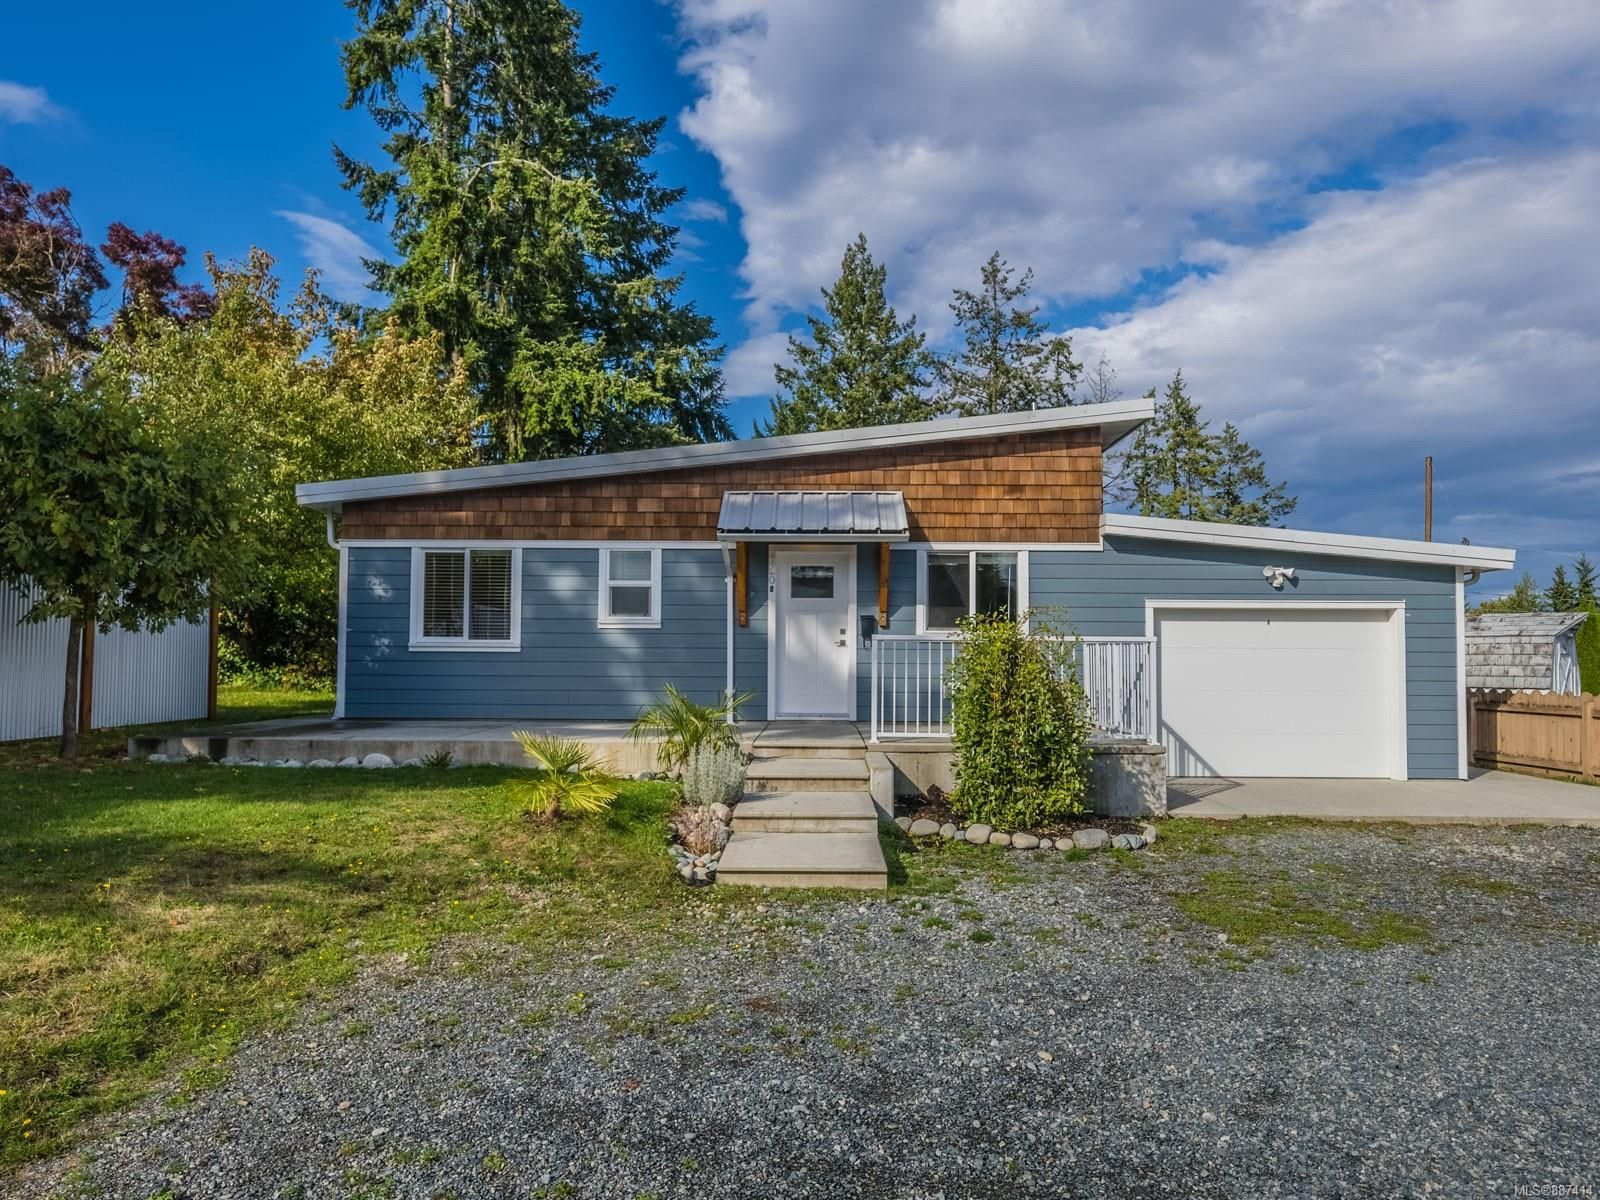 Main Photo: 920 Dufferin St in : Na Central Nanaimo House for sale (Nanaimo)  : MLS®# 887414